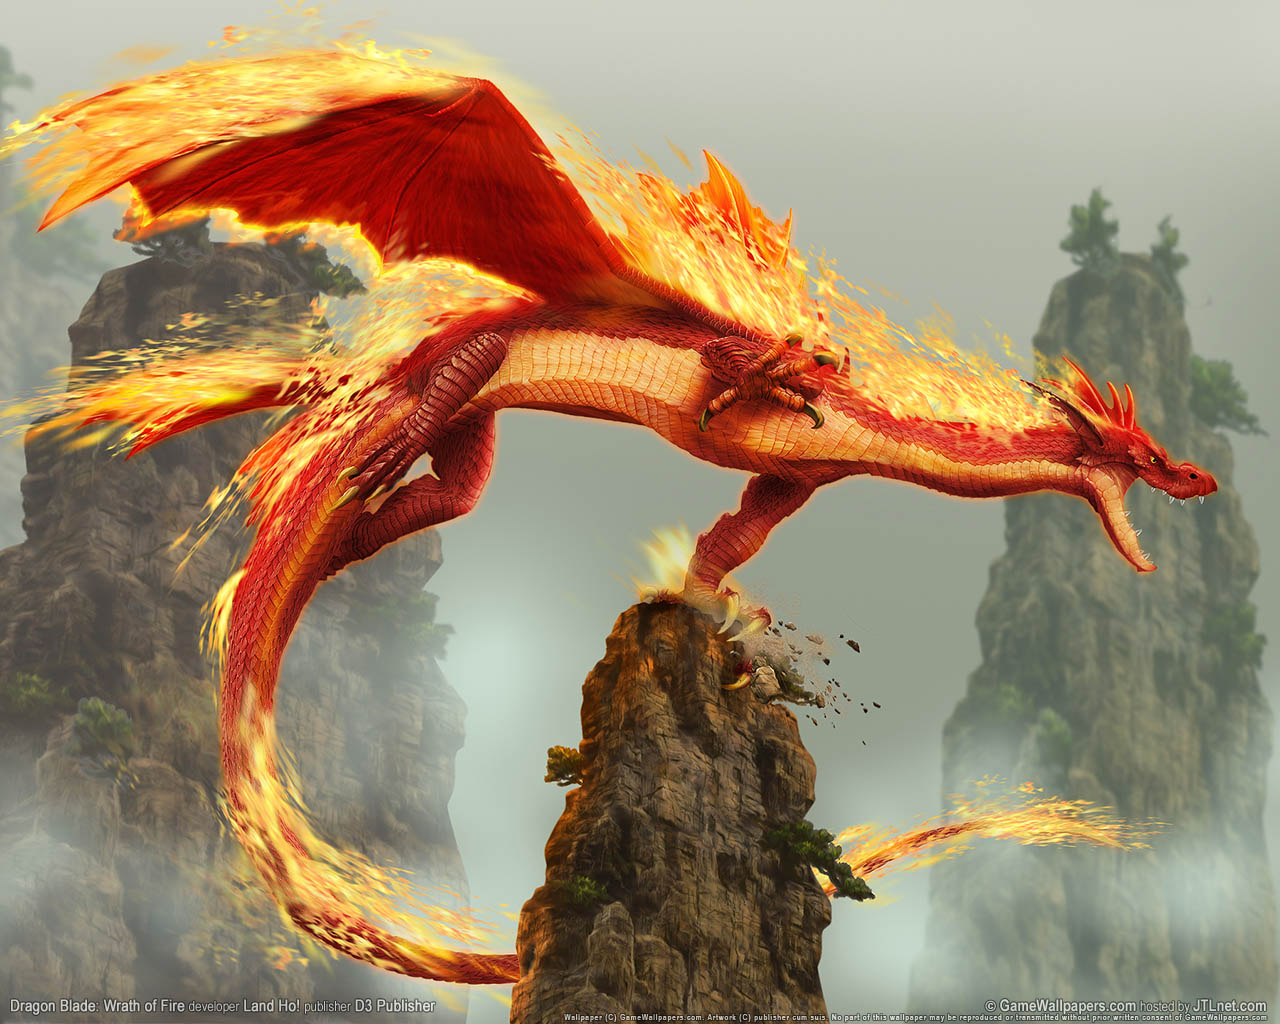 http://1.bp.blogspot.com/_nEmB3Z5F5EM/S6r50wnVTII/AAAAAAAAHnY/ON8SaJyrk6o/s1600/Dragon_Blade_-_Wrath_of_Fire,_2007.jpg